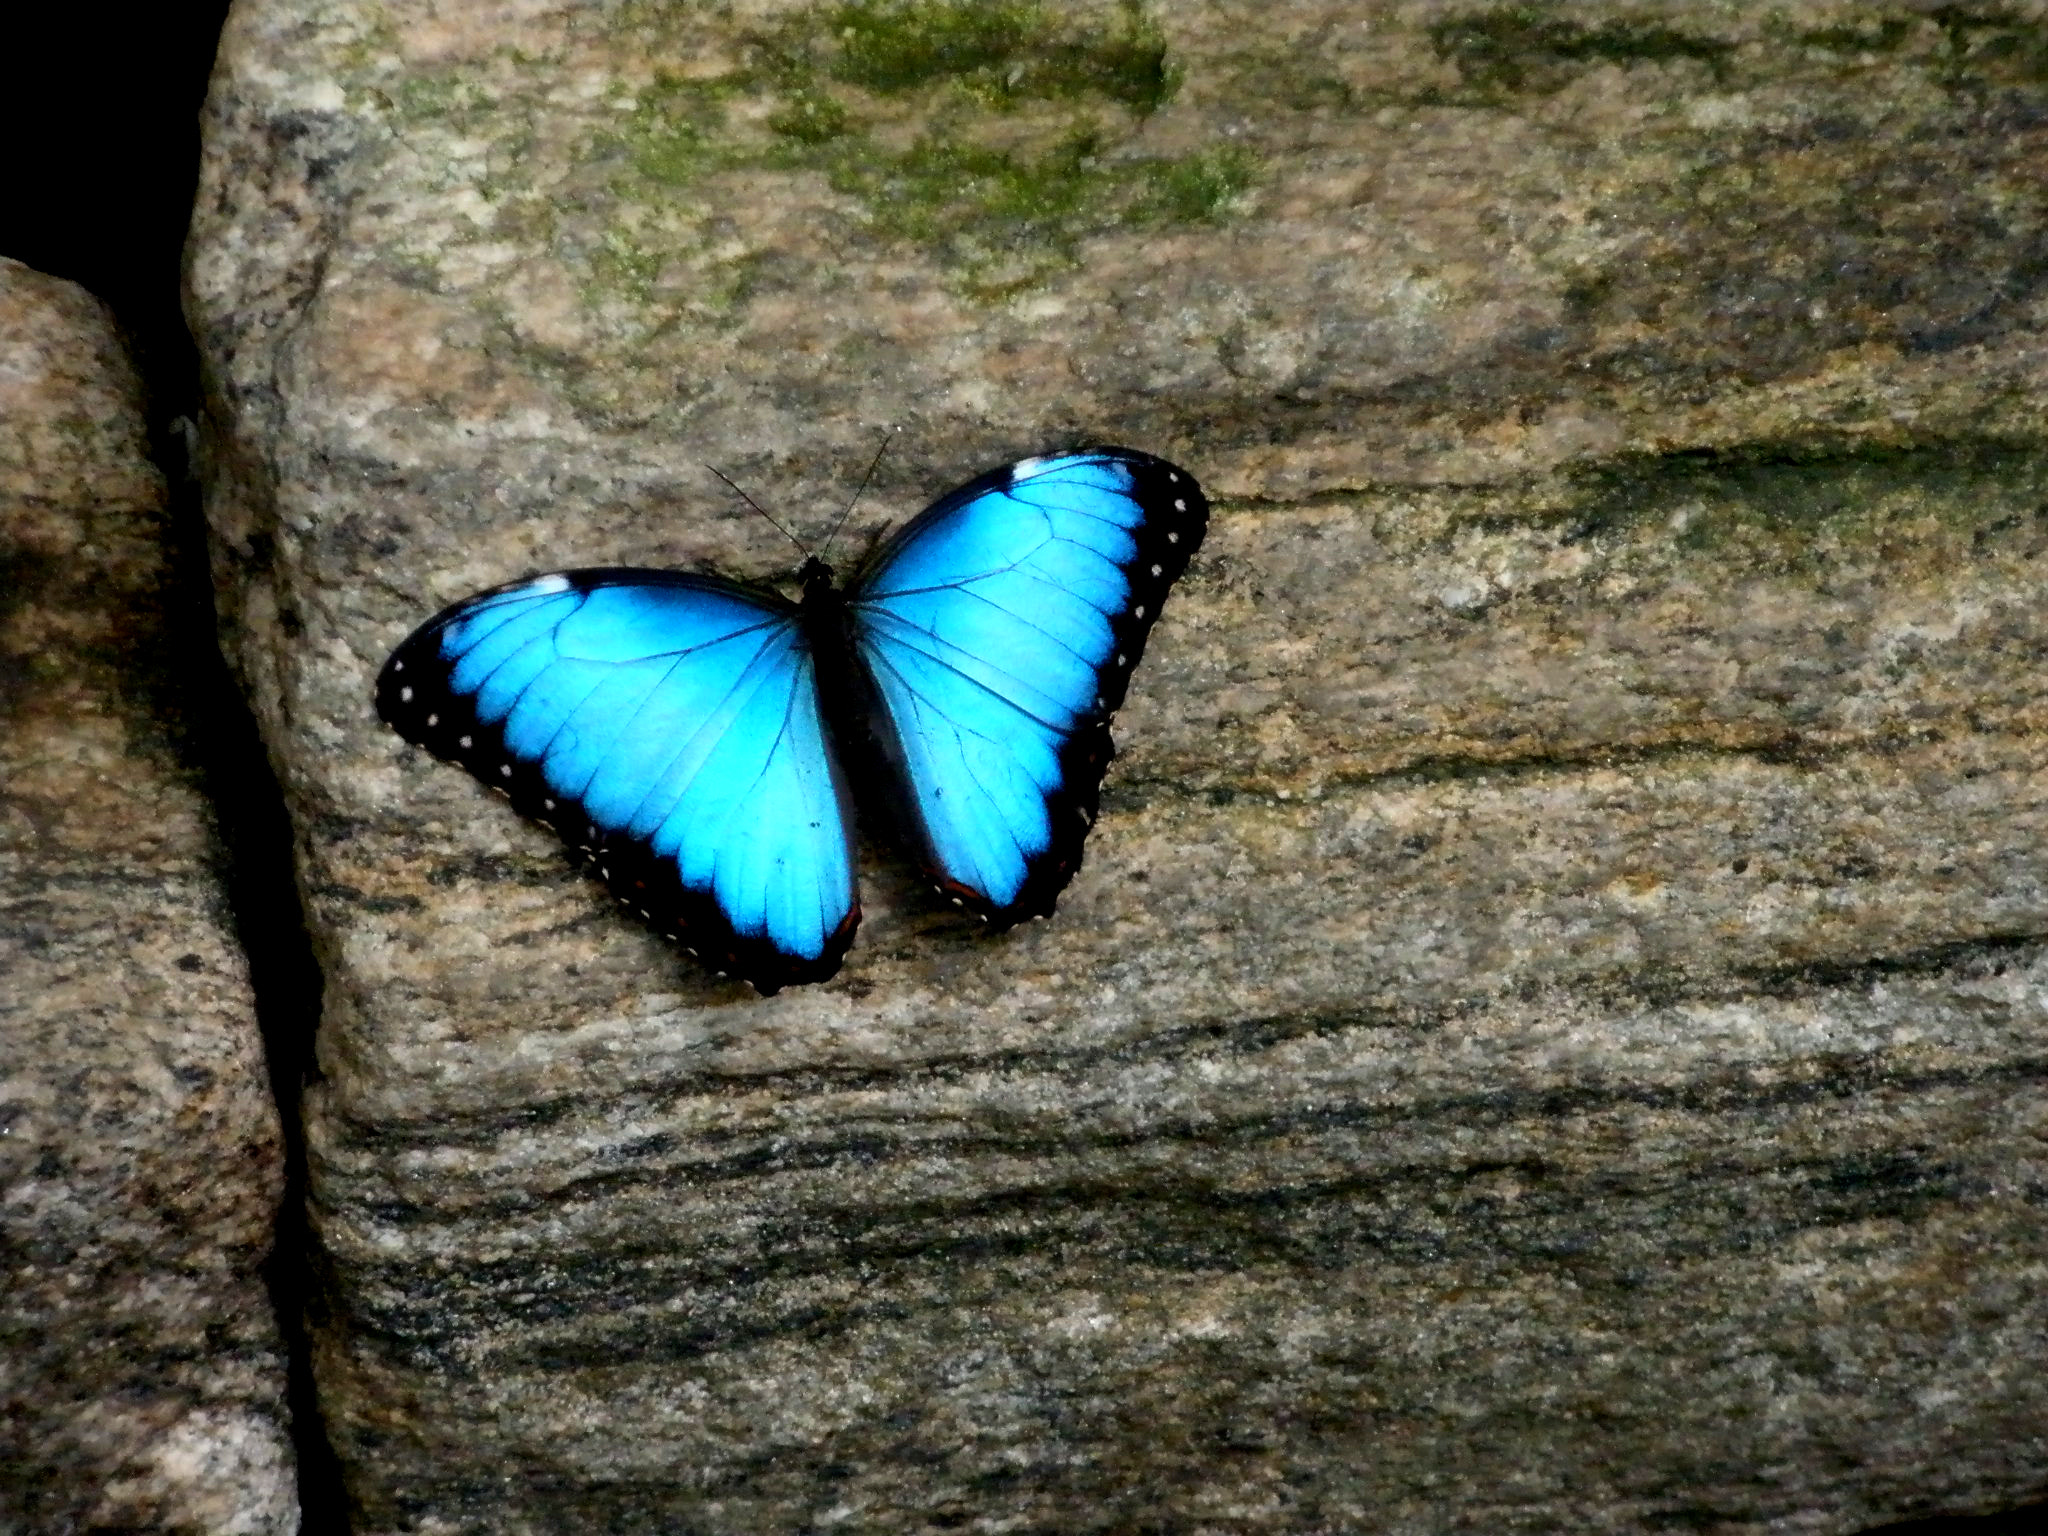 Photograph Butterfly by shahar shalom on 500px